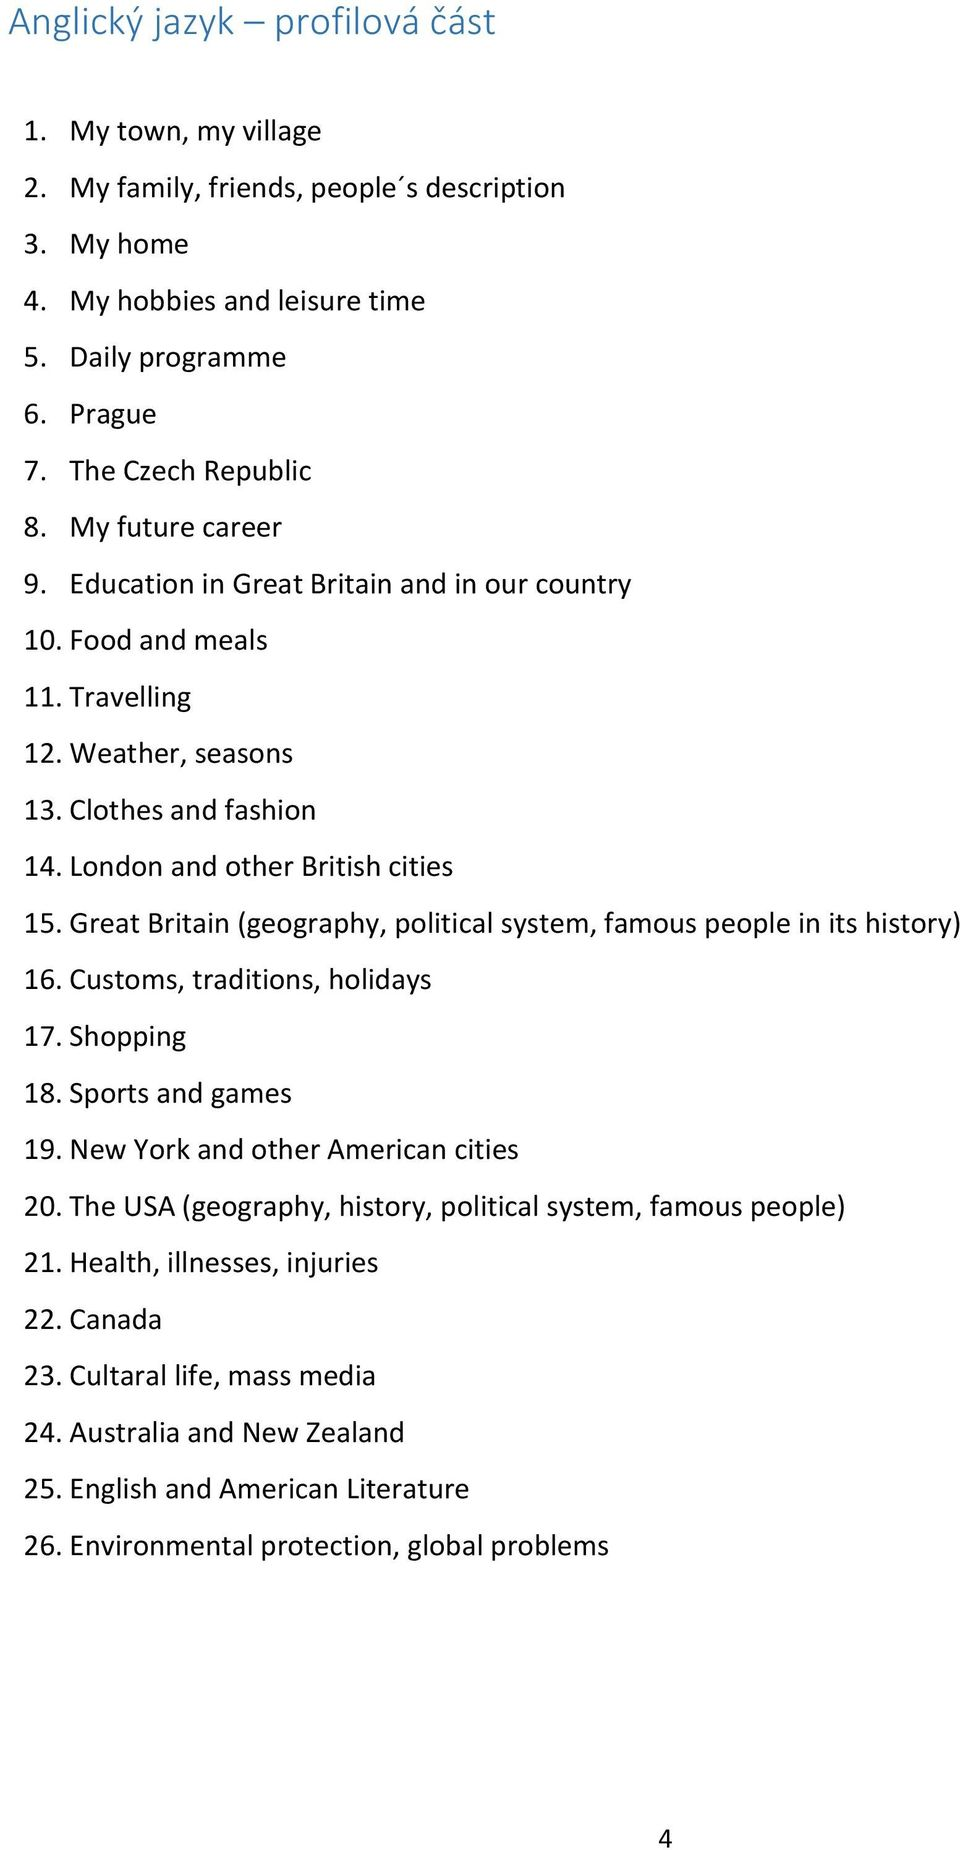 Great Britain (geography, political system, famous people in its history) 16. Customs, traditions, holidays 17. Shopping 18. Sports and games 19. New York and other American cities 20.